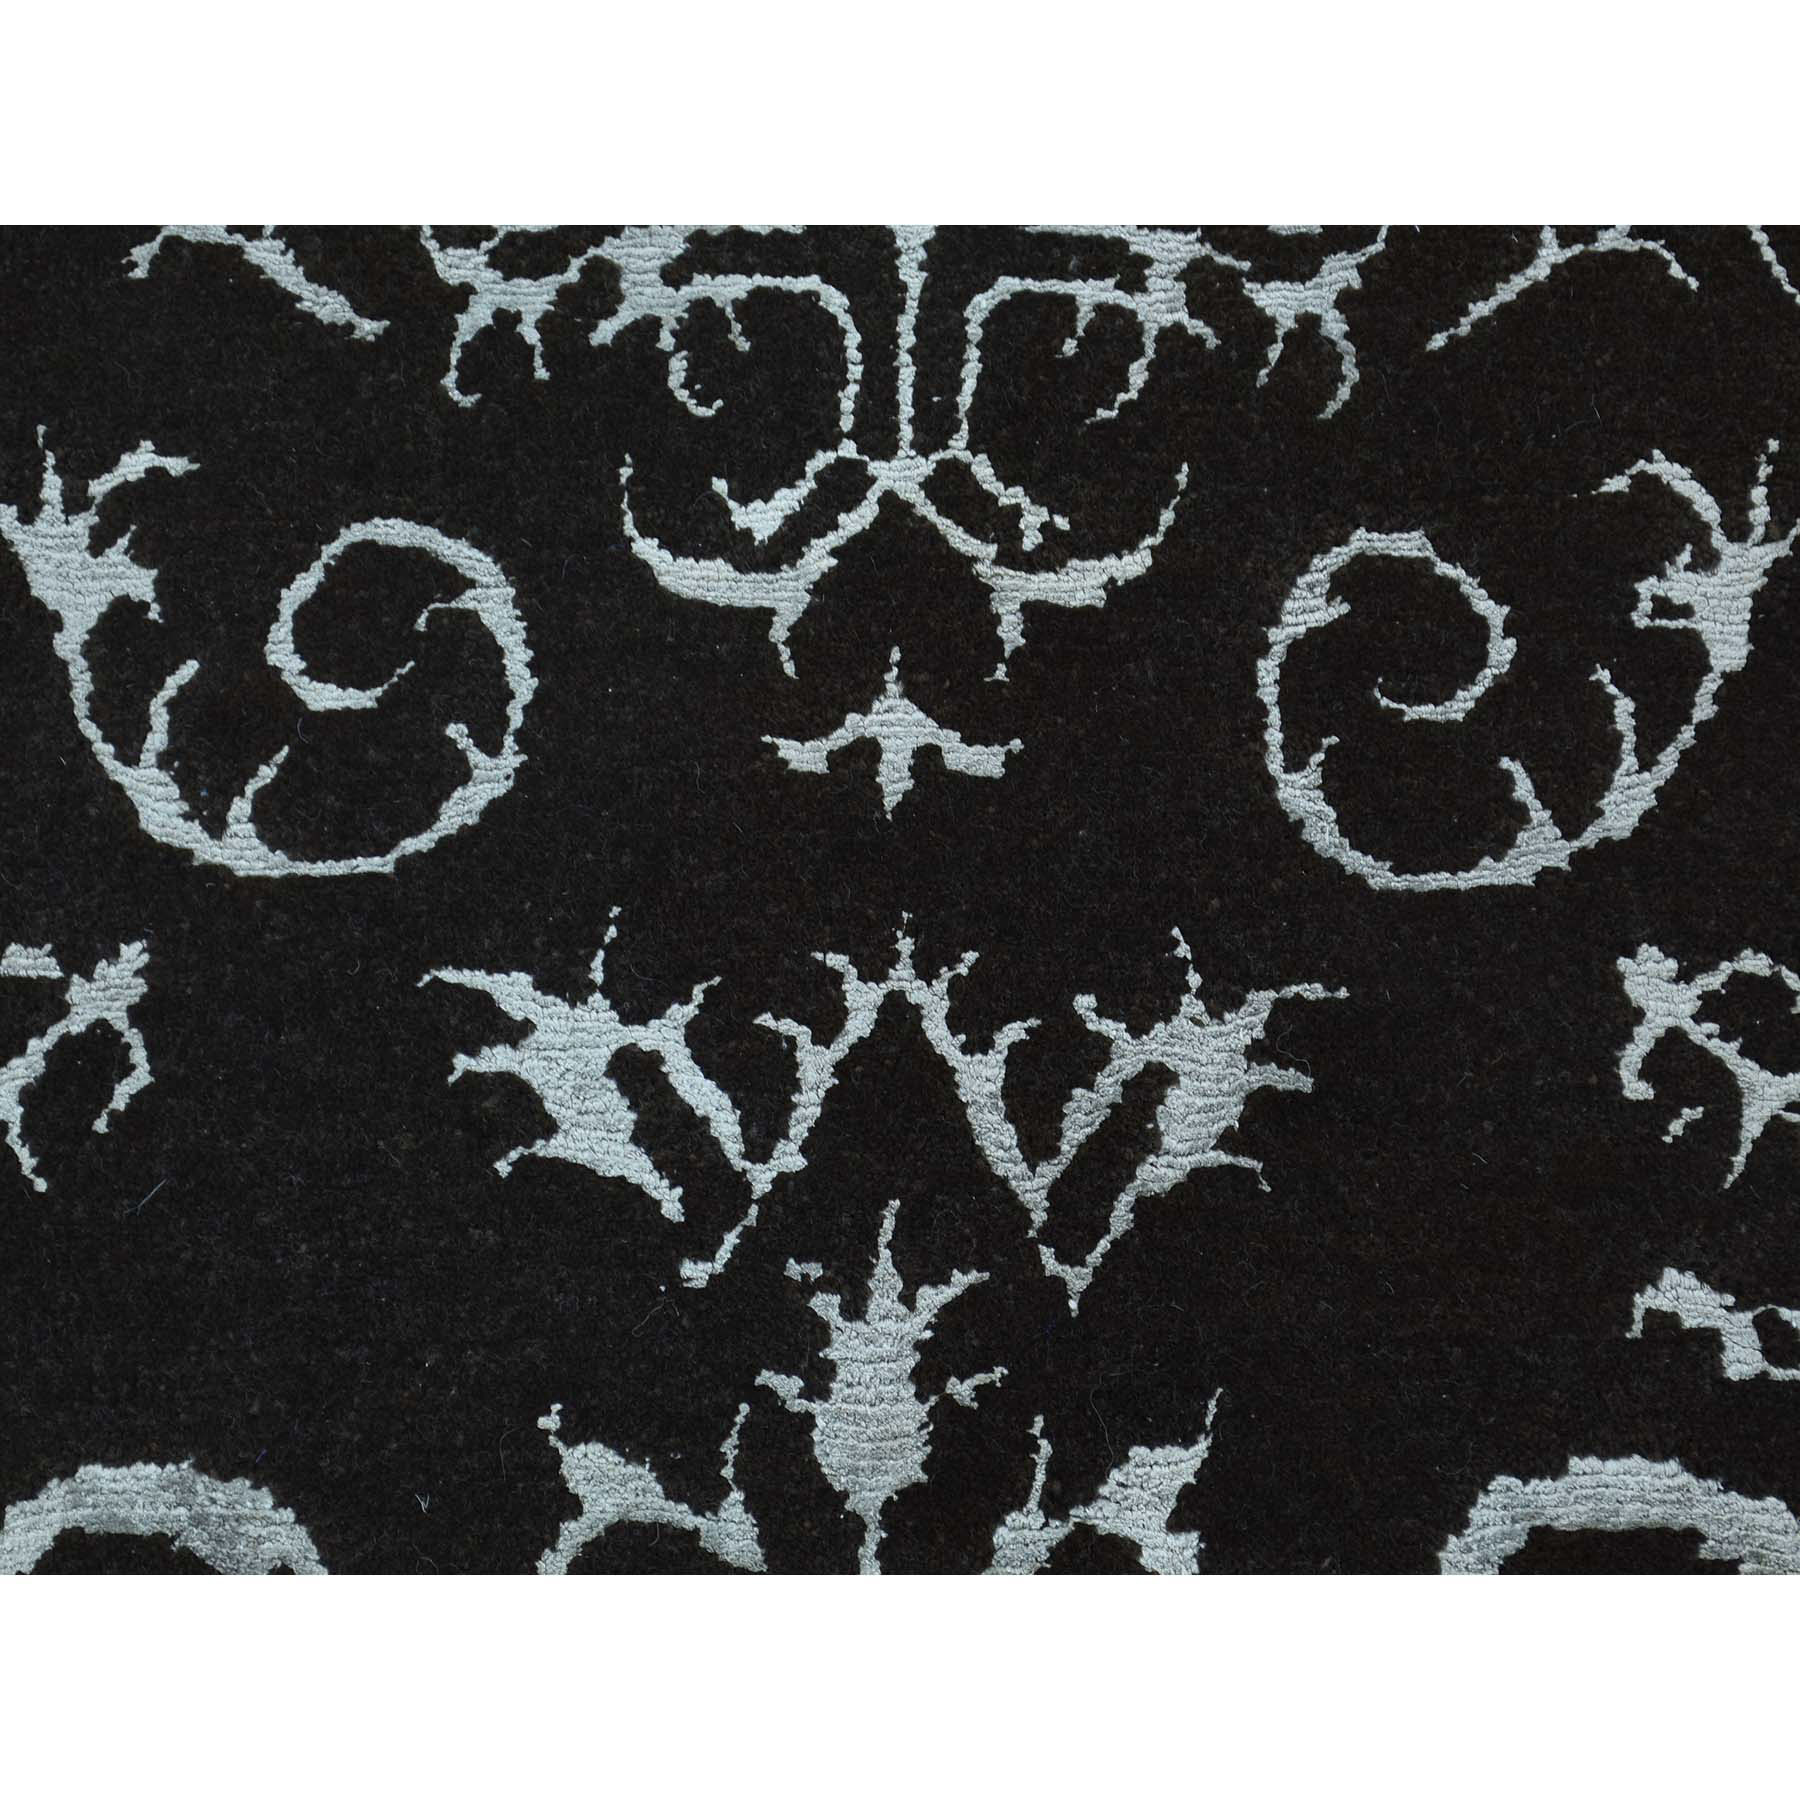 2-x2-10  Modern Wool and Silk Damask Design Hand-Knotted Rug